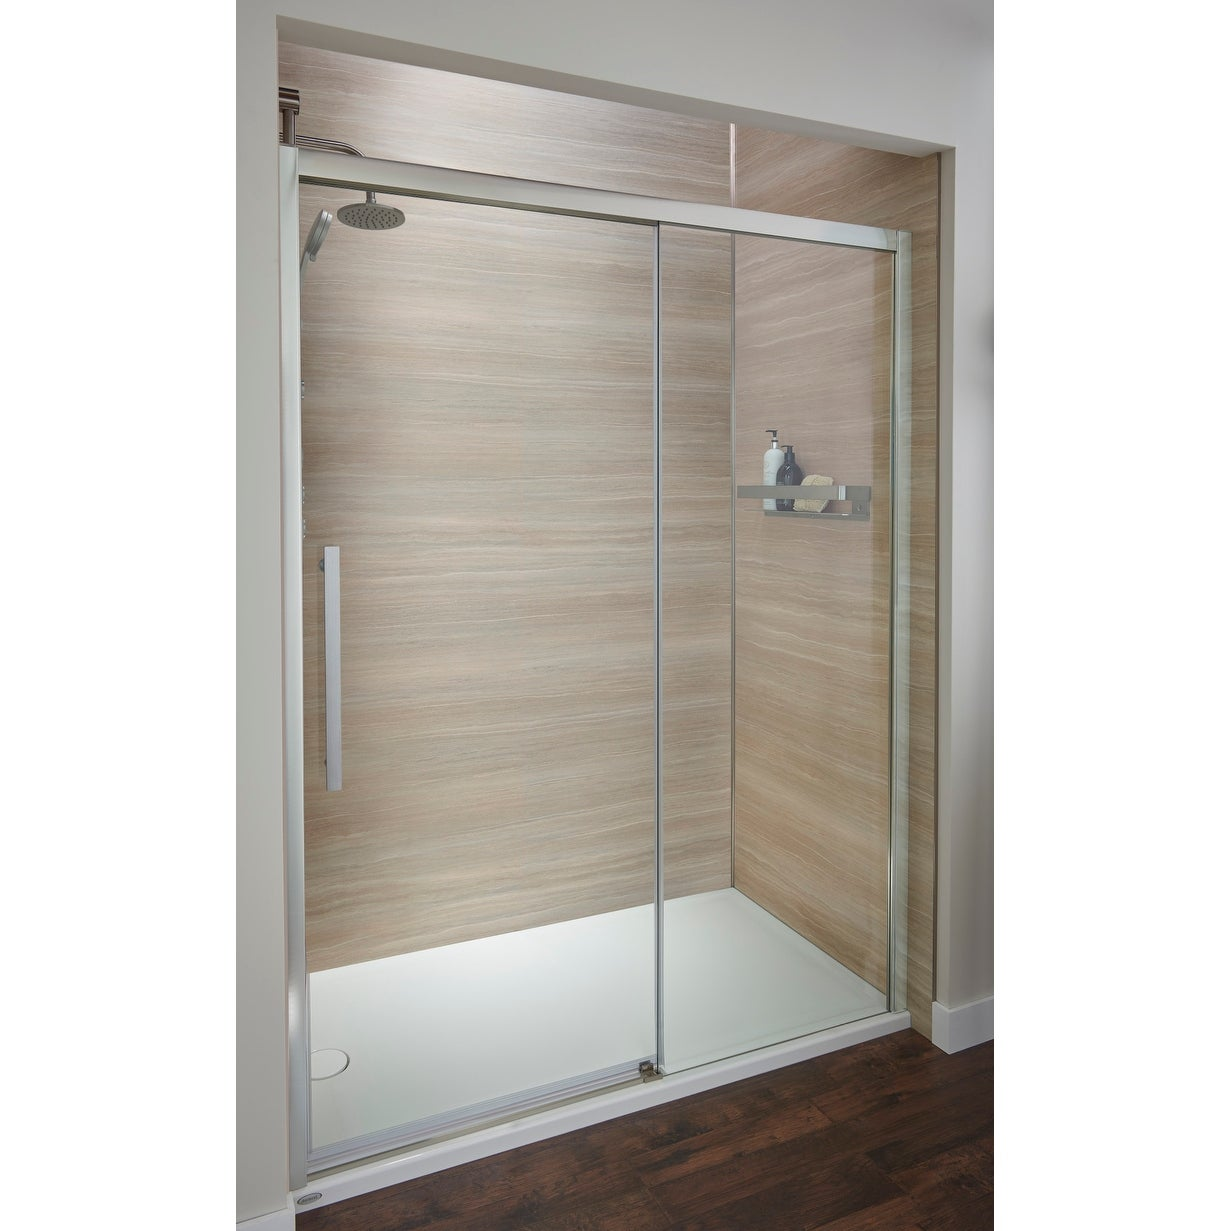 Jacuzzi Sd60 76 High X 60 Wide Sliding Semi Frameless Shower Door With Clear Glass